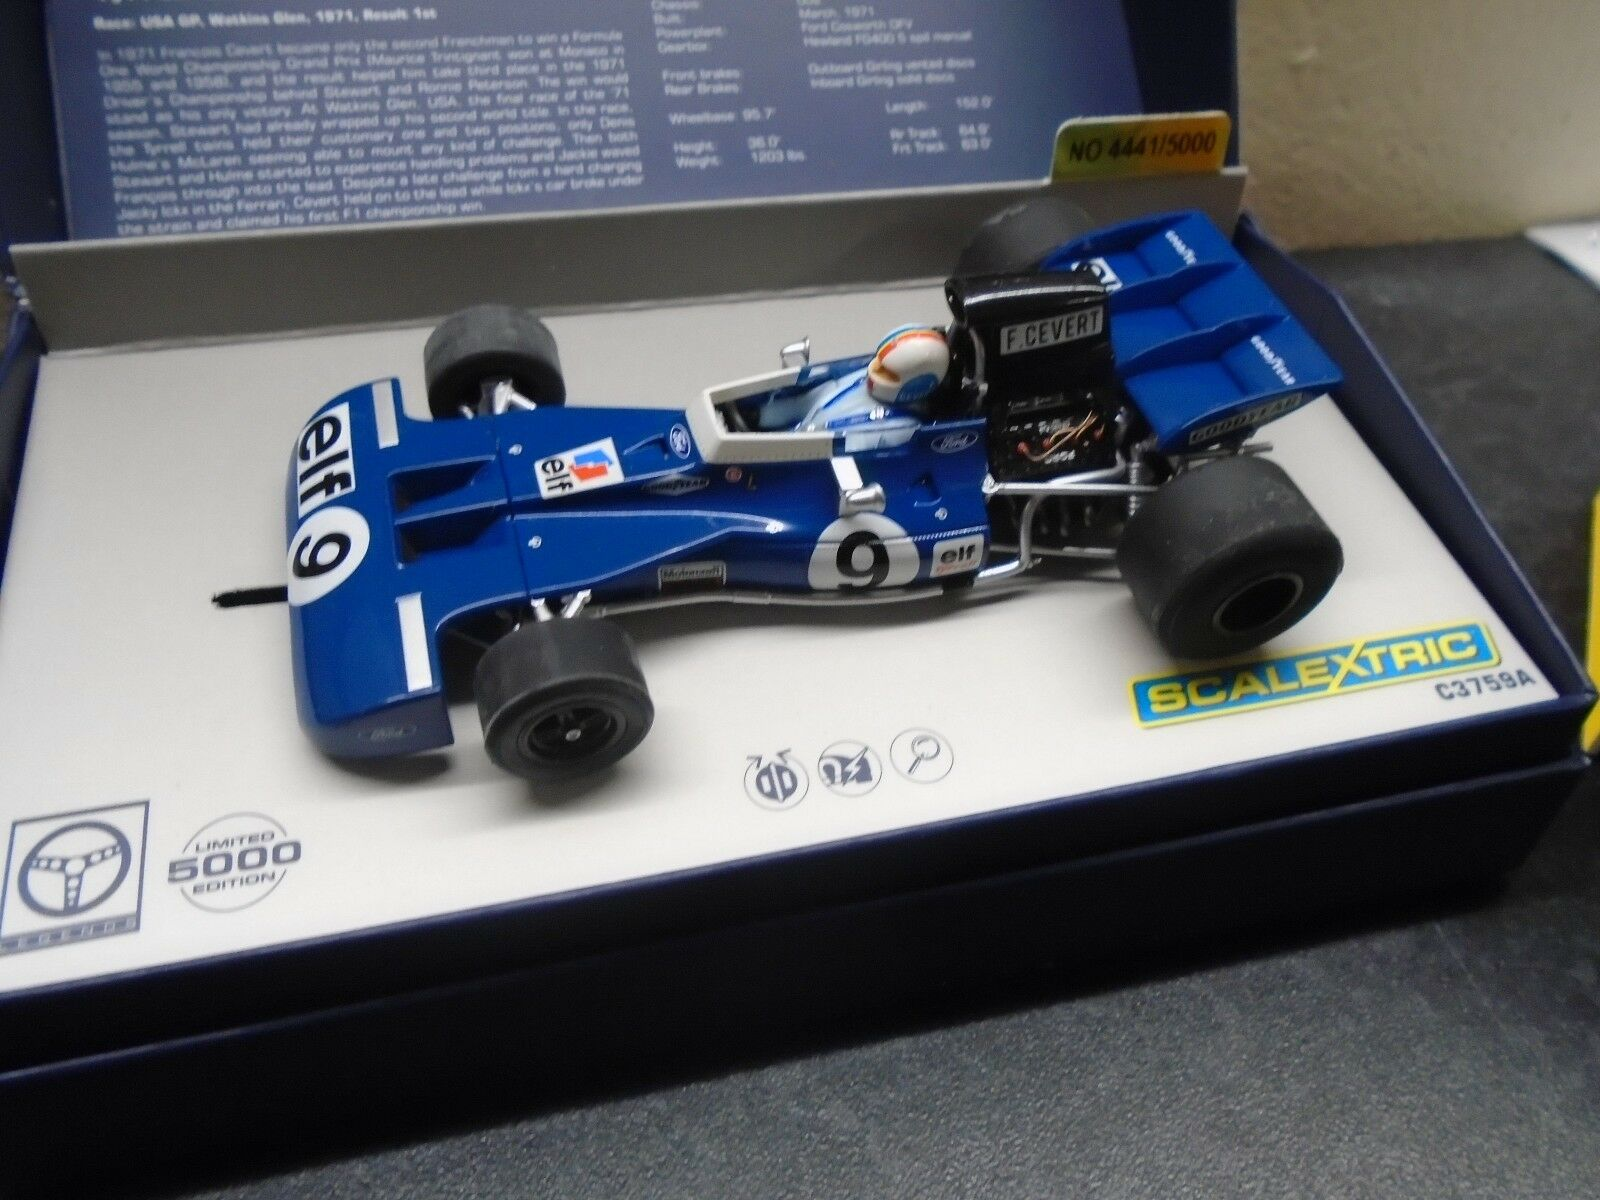 Scalextric  Legends C3759a Tyrell 002 F1 Cegreen m b